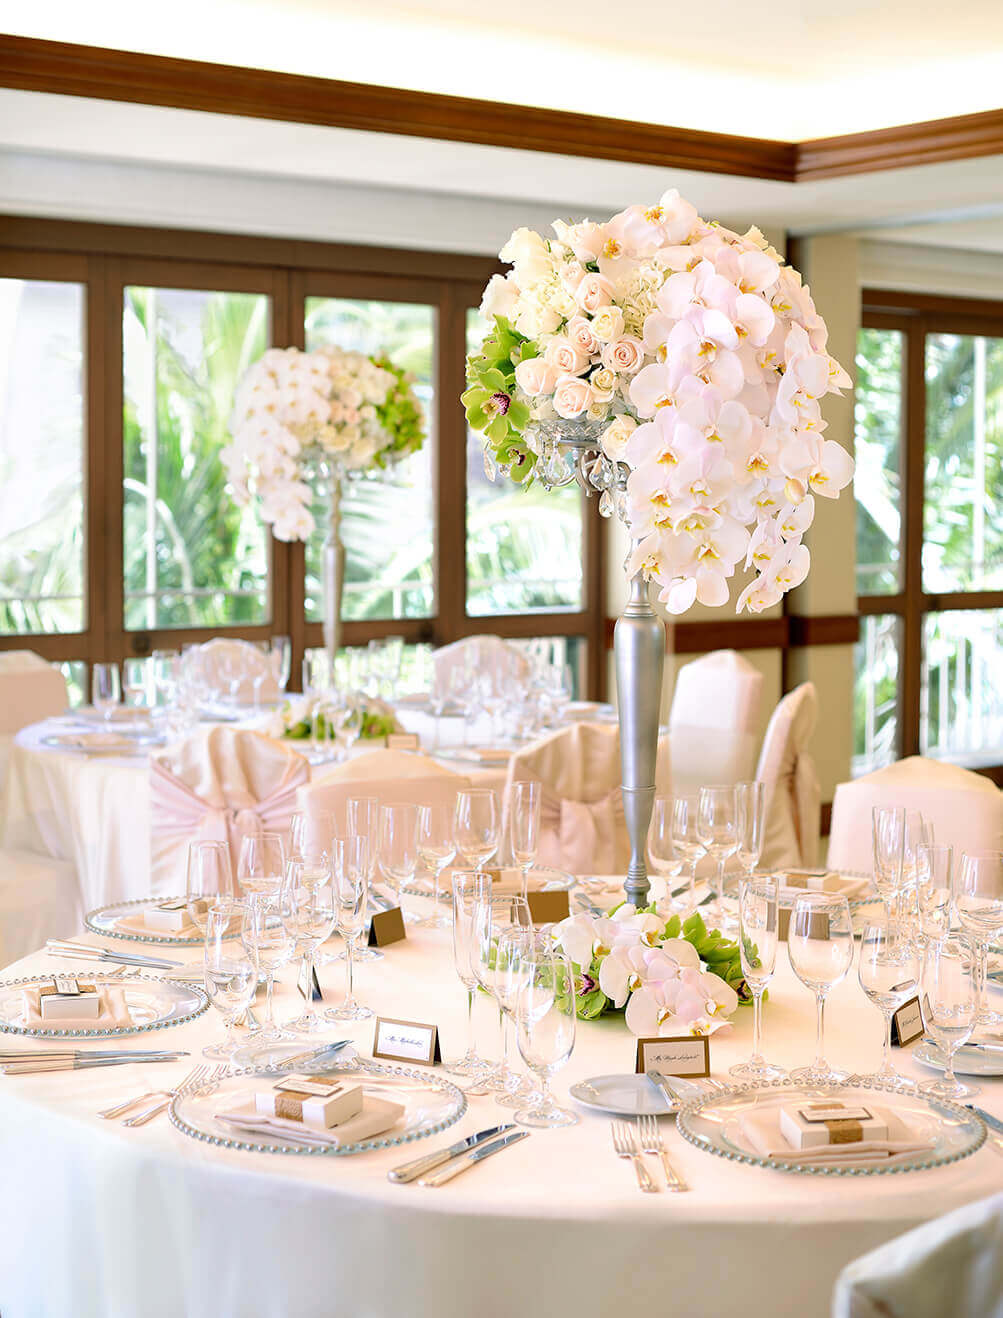 Floral arrangements adorn the tables in the Kalia & Keawe Rooms